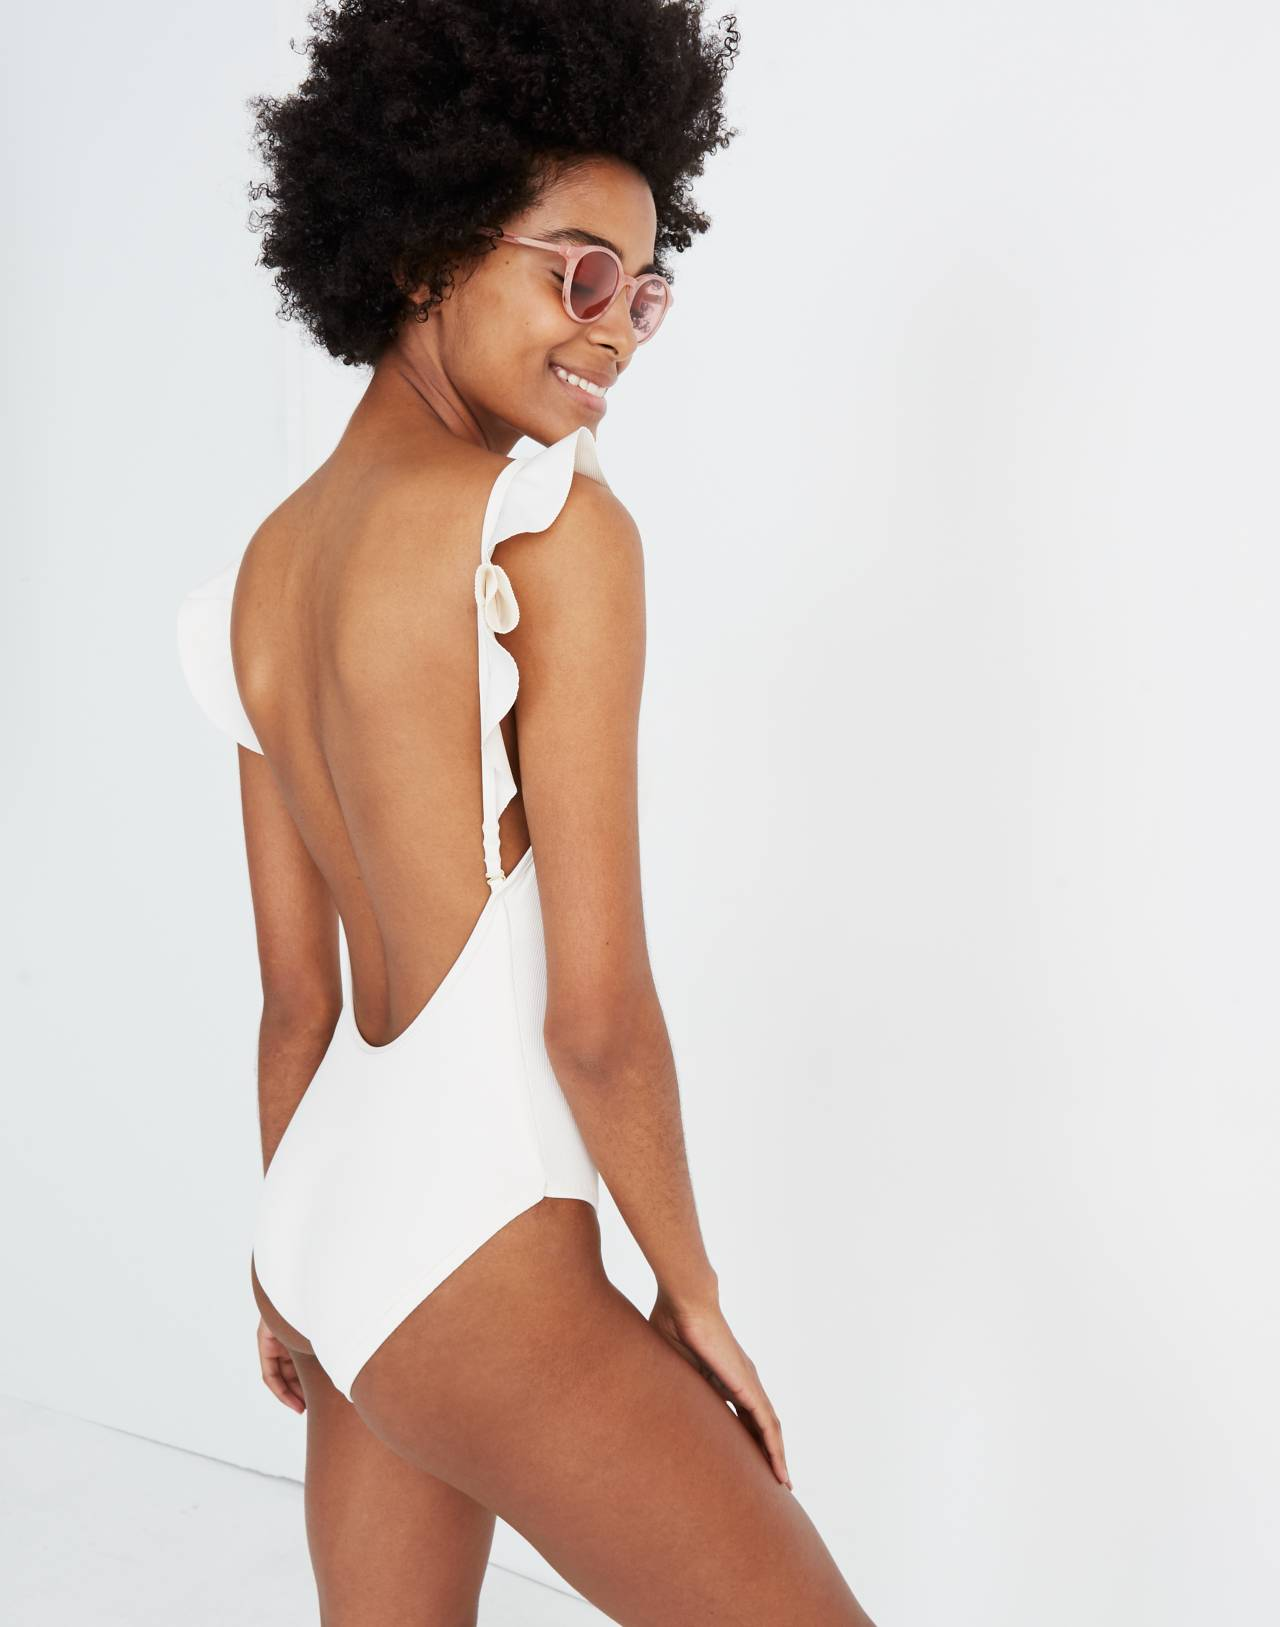 Madewell Second Wave Ribbed Ruffle-Strap One-Piece Swimsuit in pearl ivory image 1